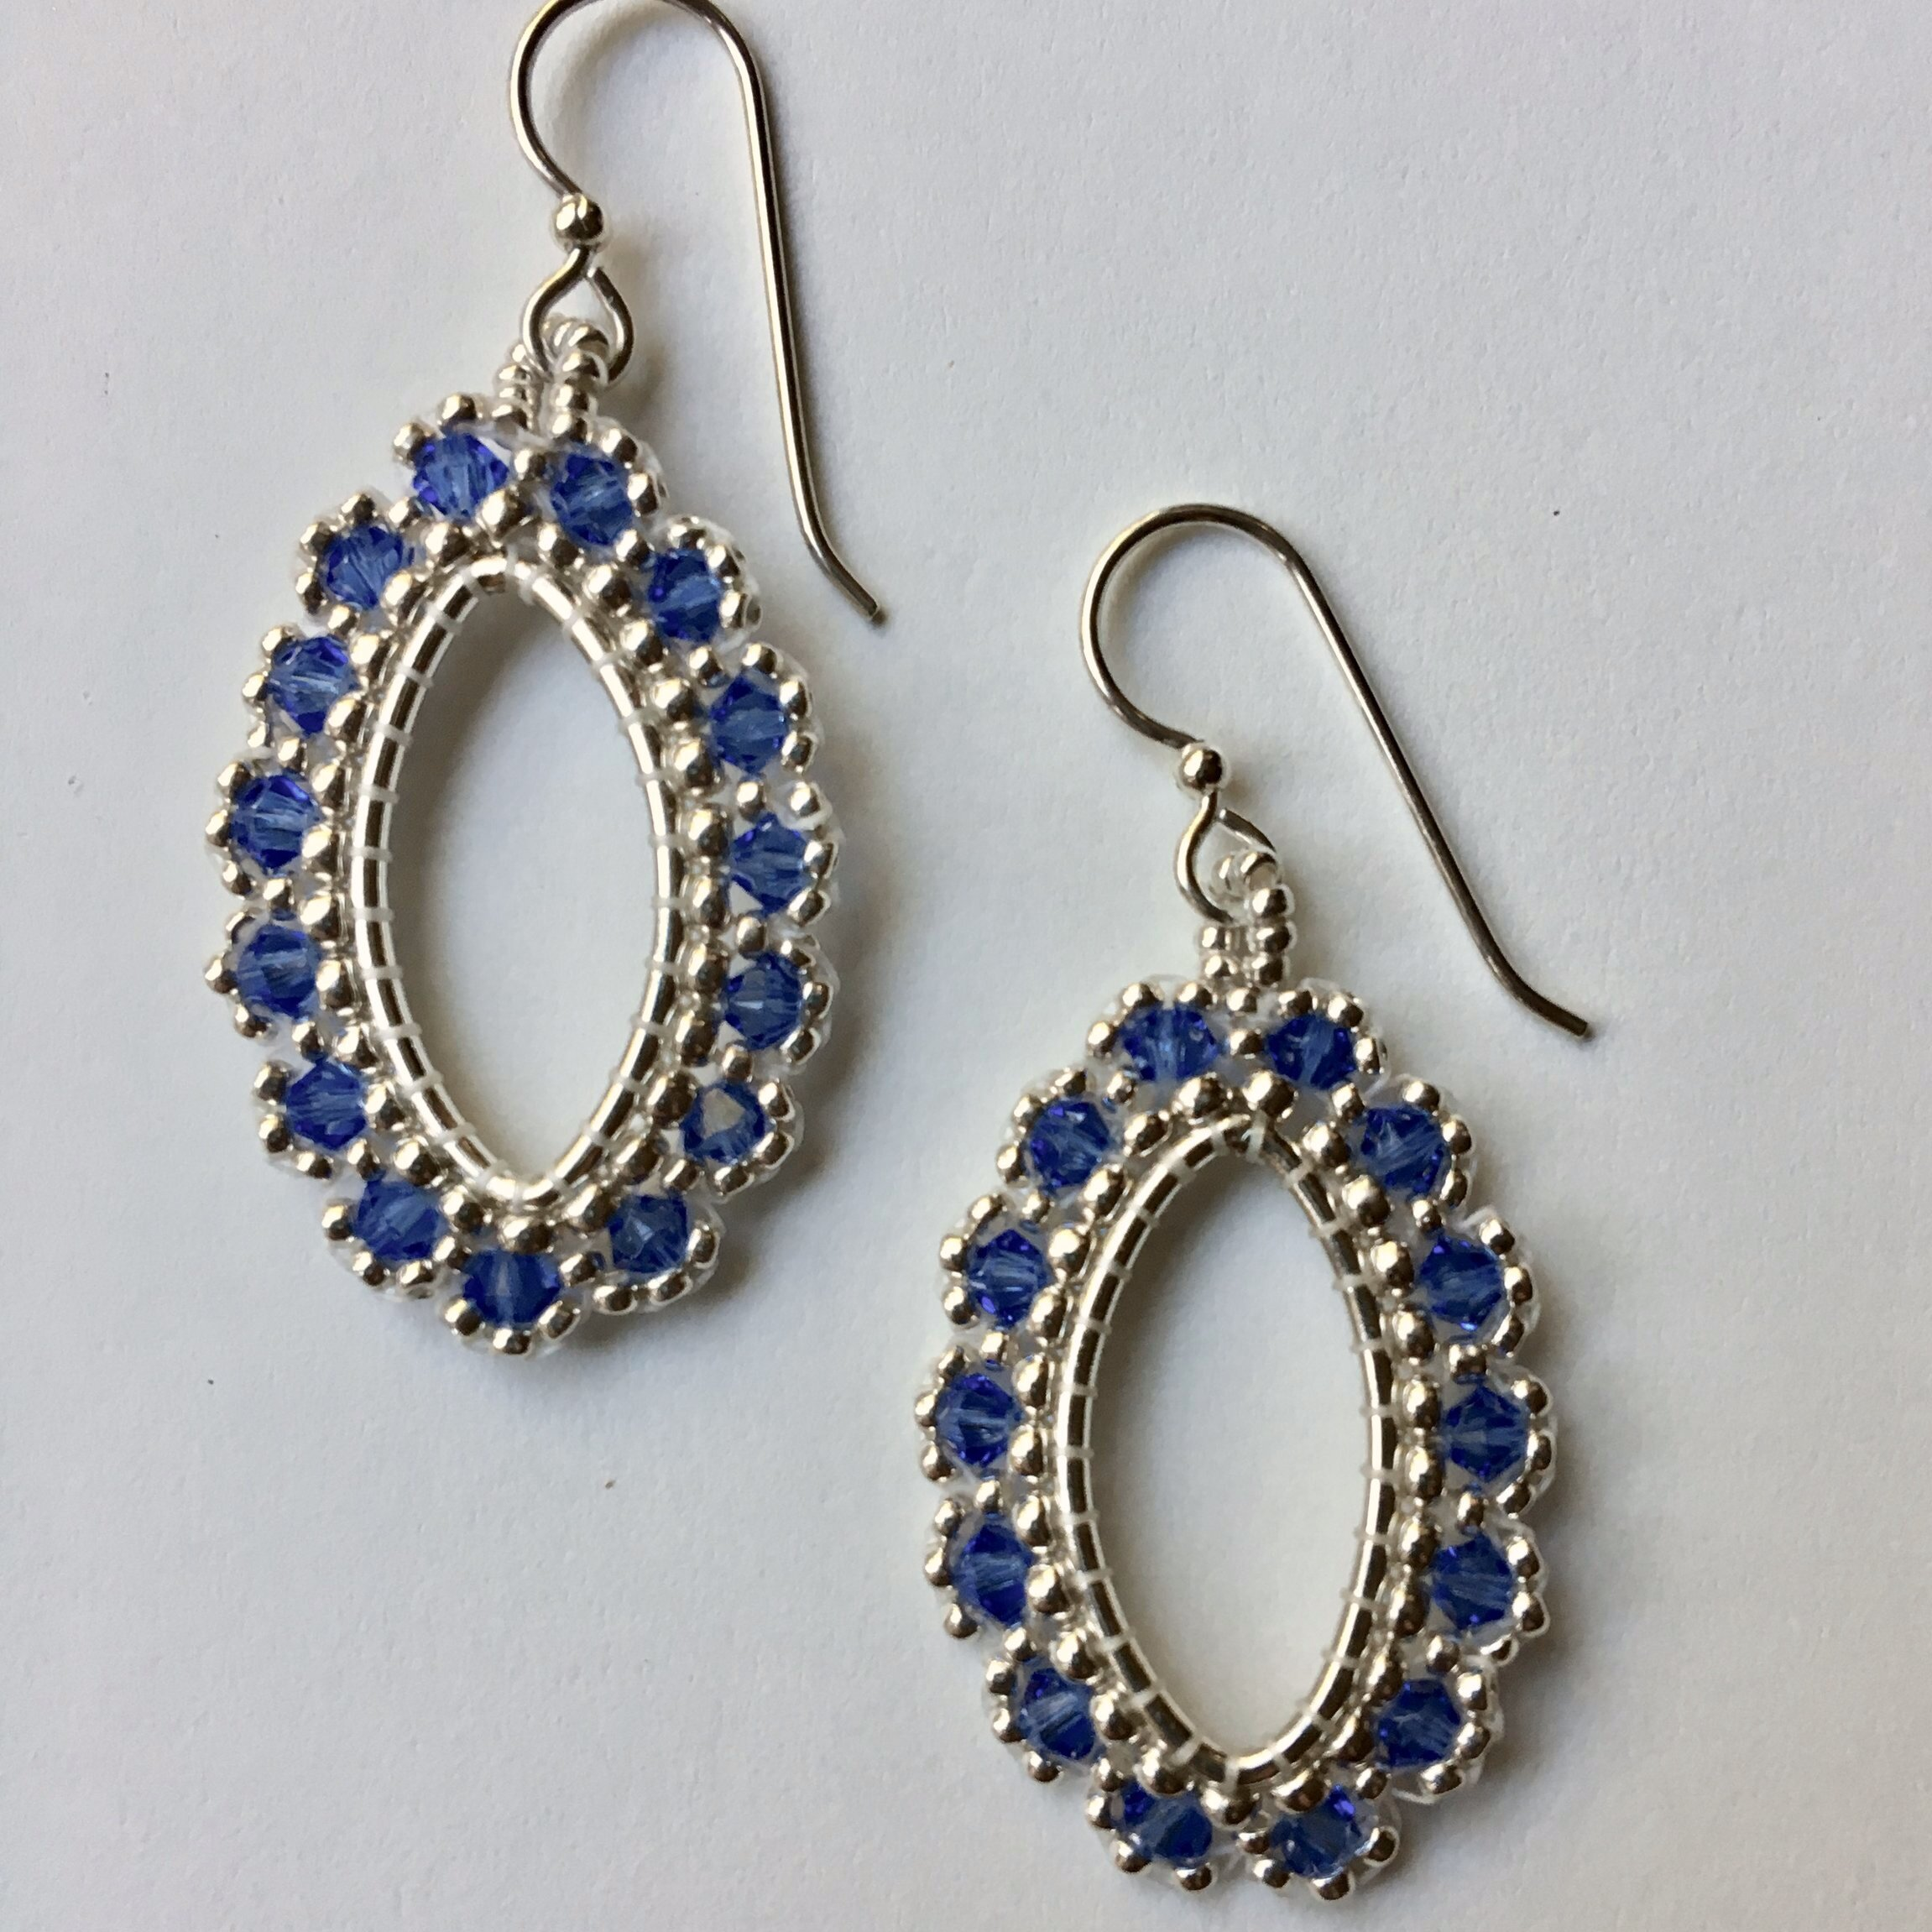 NEW! Silver and Sapphire Crystal Marquise Earrings